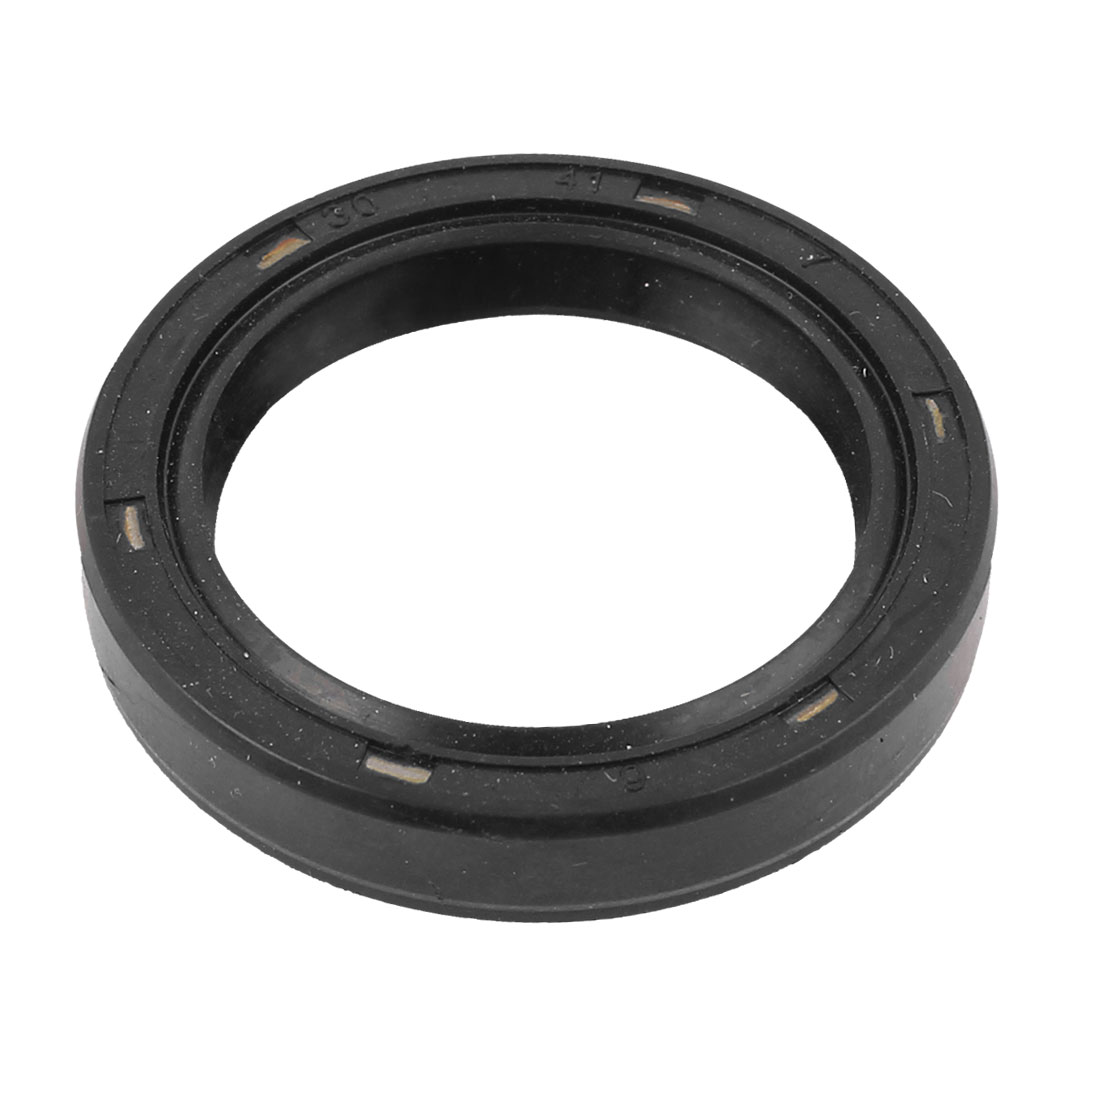 Rubber Sealed Double Lip Shaft Oil Seal 41mm x 29mm x 6mm for GBH2-26RE